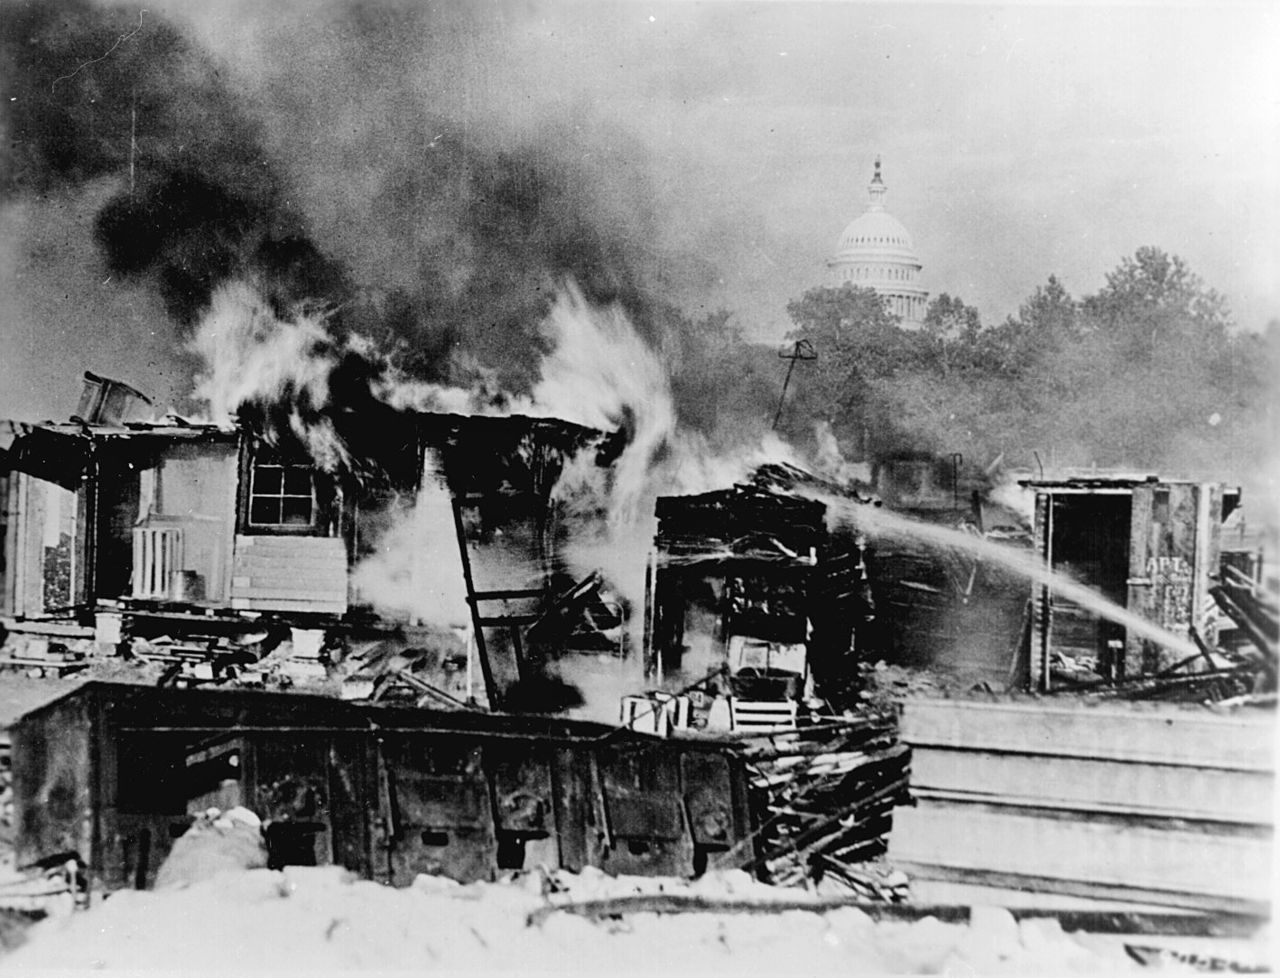 Wood and paper shacks in flames. A gush for firefighter water streams from the right. The capital building is visible through the smoke in the background.